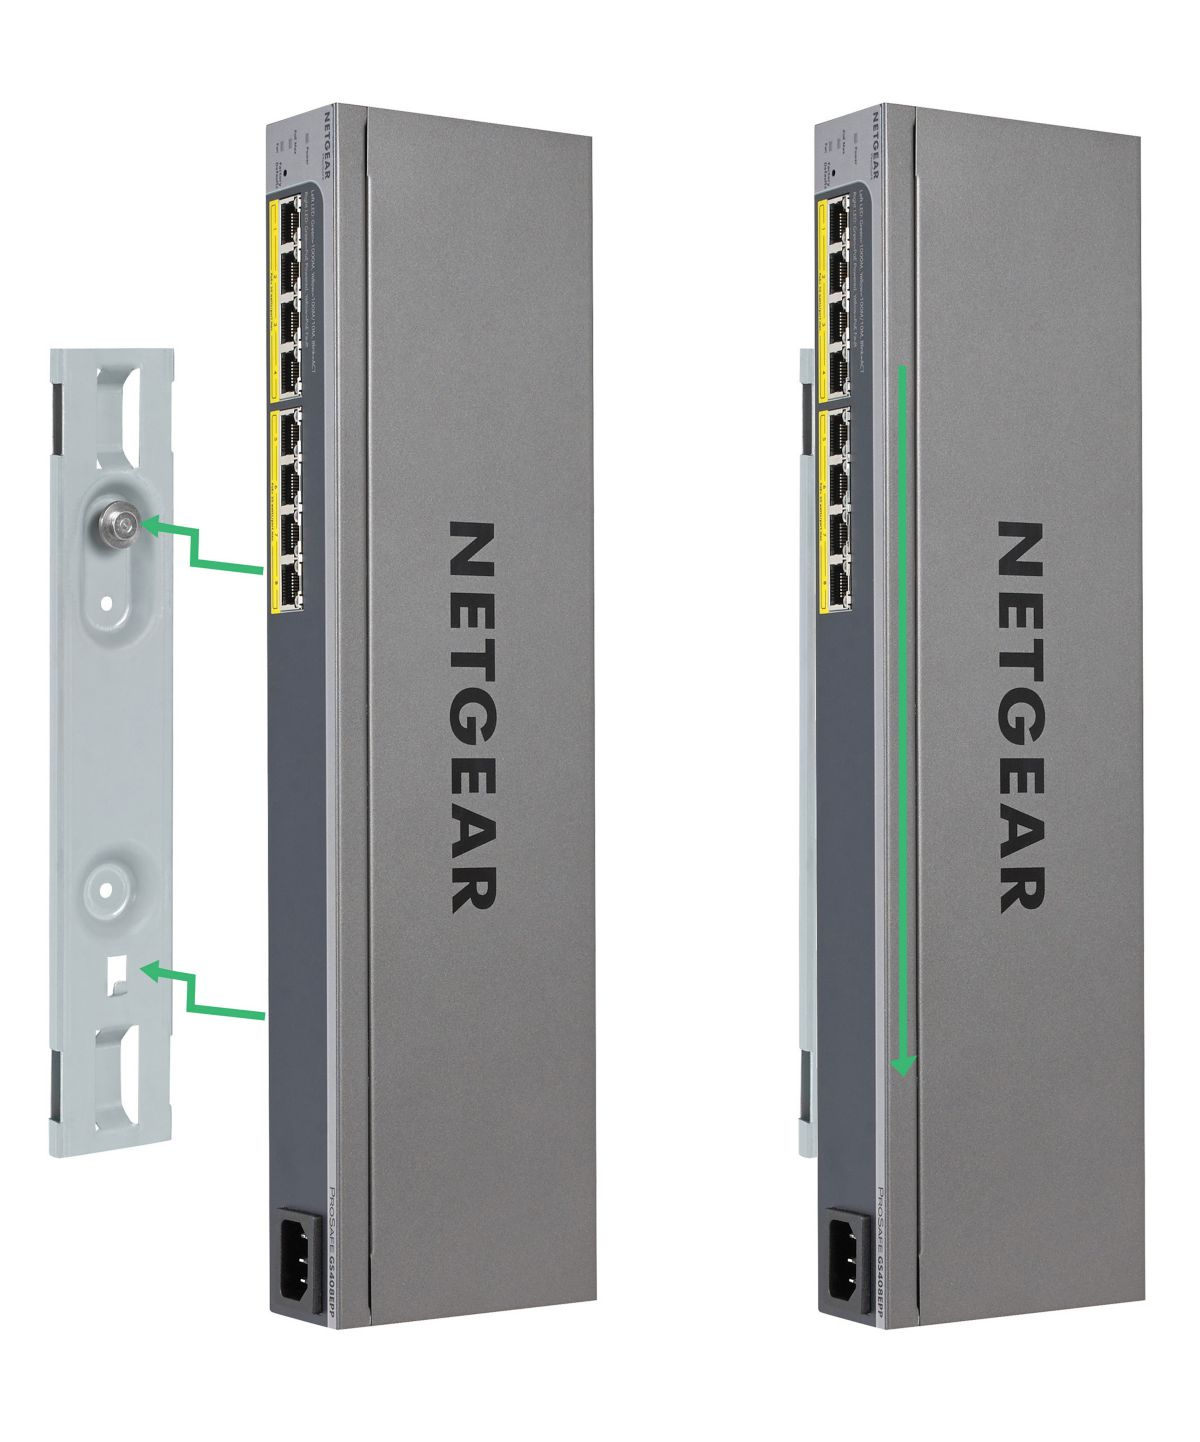 Netgear Switch Hardware »GS408EPP 8-Port GB Eas...